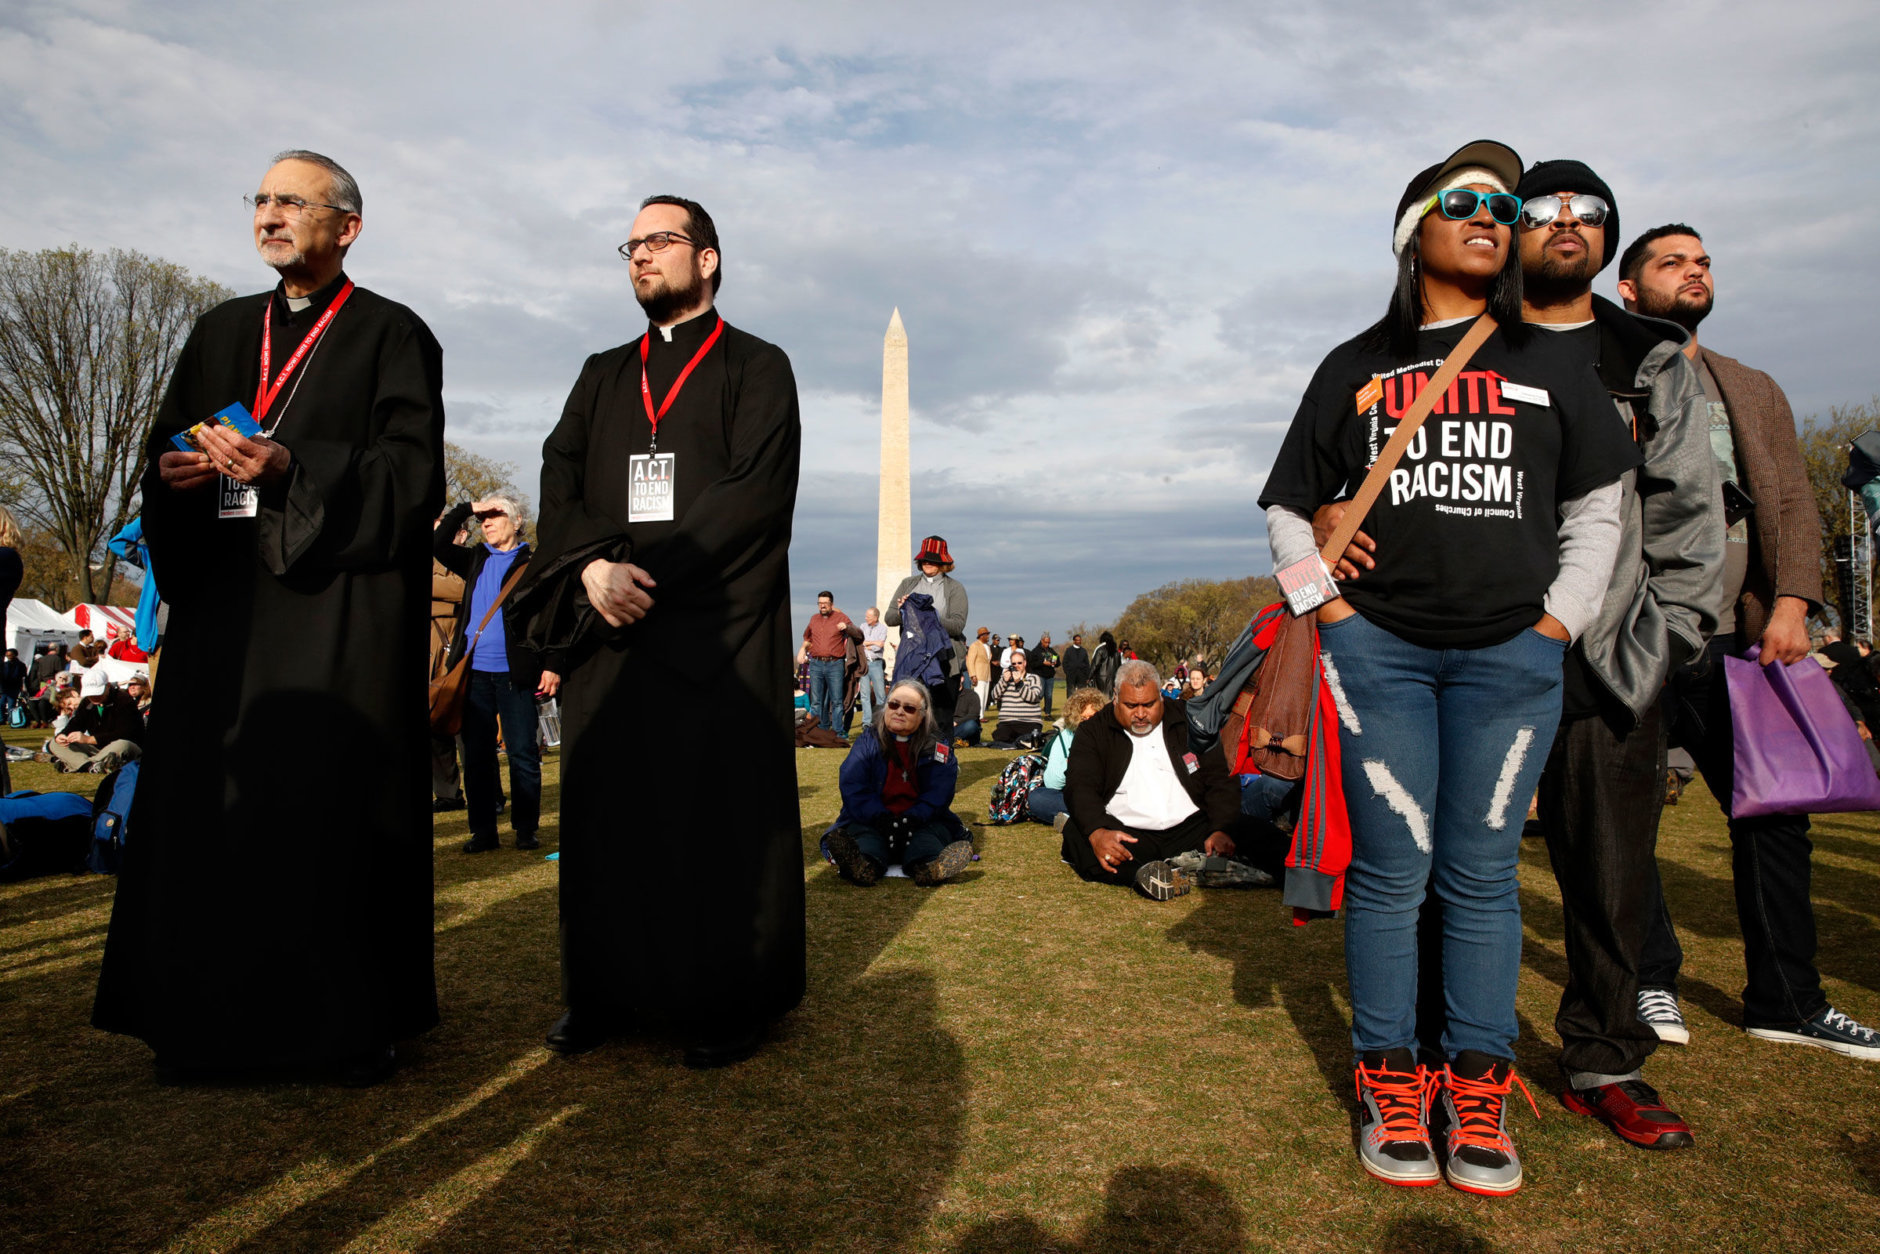 Father Yeprem Kelegian, left, and Father Avedis Kalayjian, both clergy in the Armenian Church, and Cheyanne Friend, center right, with her husband Darin Friend, of Charleston, W.V., attend the A.C.T. To End Racism rally, Wednesday, April 4, 2018, on the National Mall in Washington, on the 50th anniversary of Martin Luther King Jr.'s assassination. (AP Photo/Jacquelyn Martin)